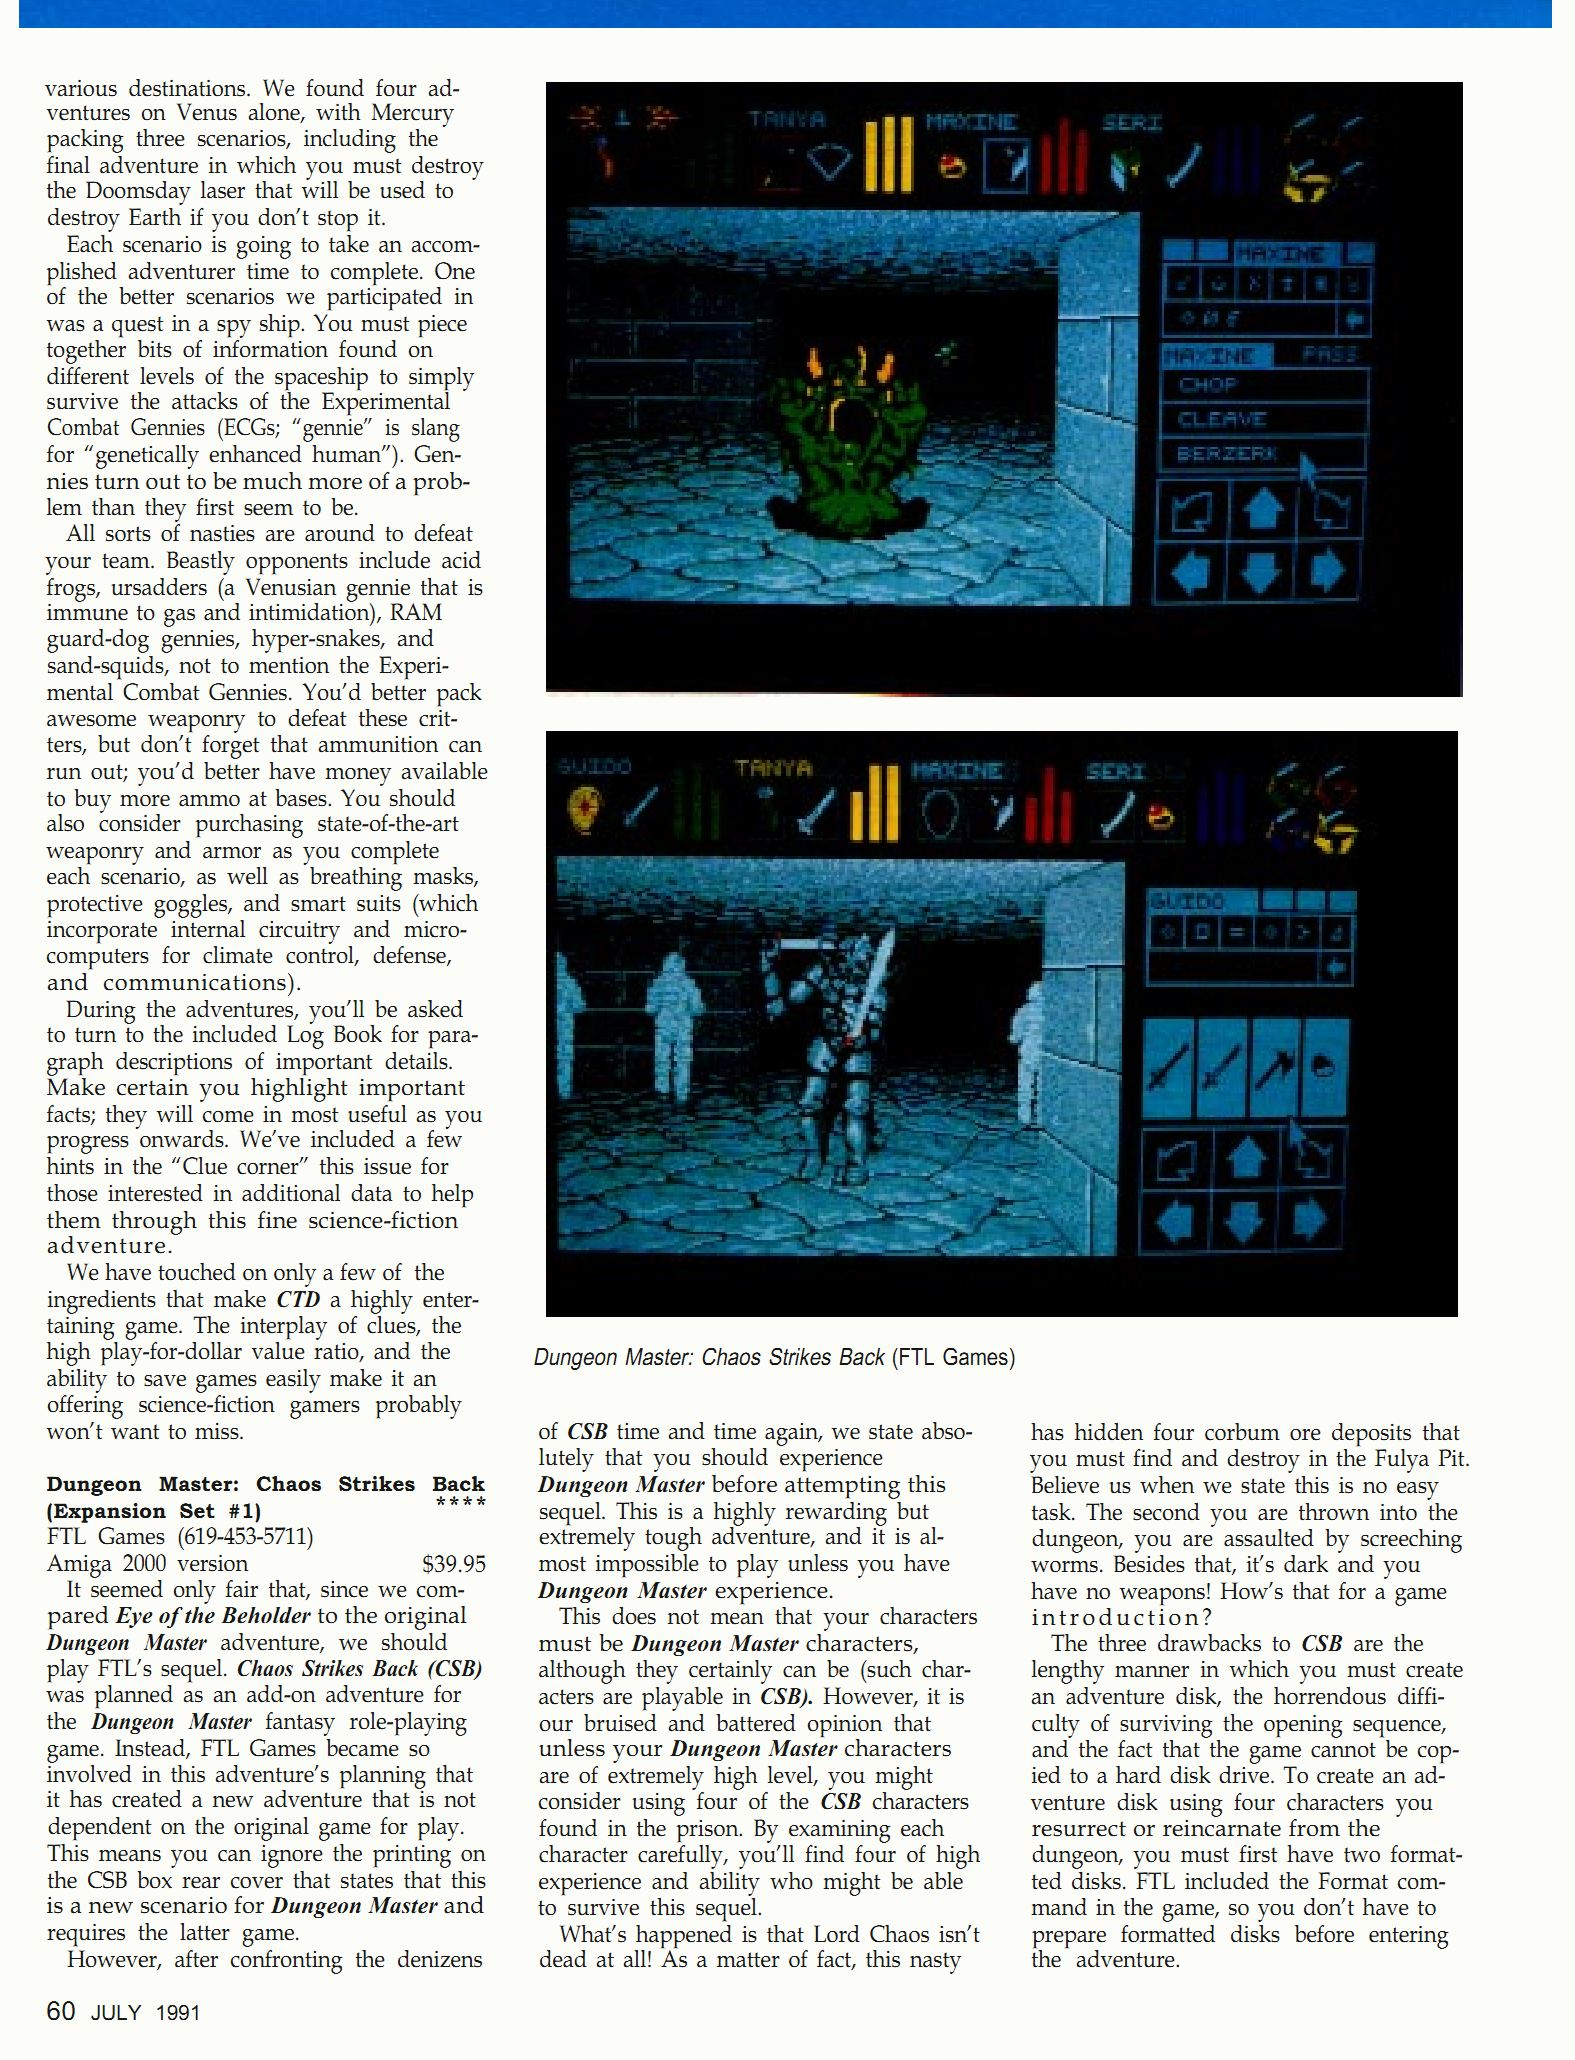 Chaos Strikes Back Review published in British-American magazine 'Dragon Magazine', Issue #171 Vol XVI No 2 July 1991, Page 60